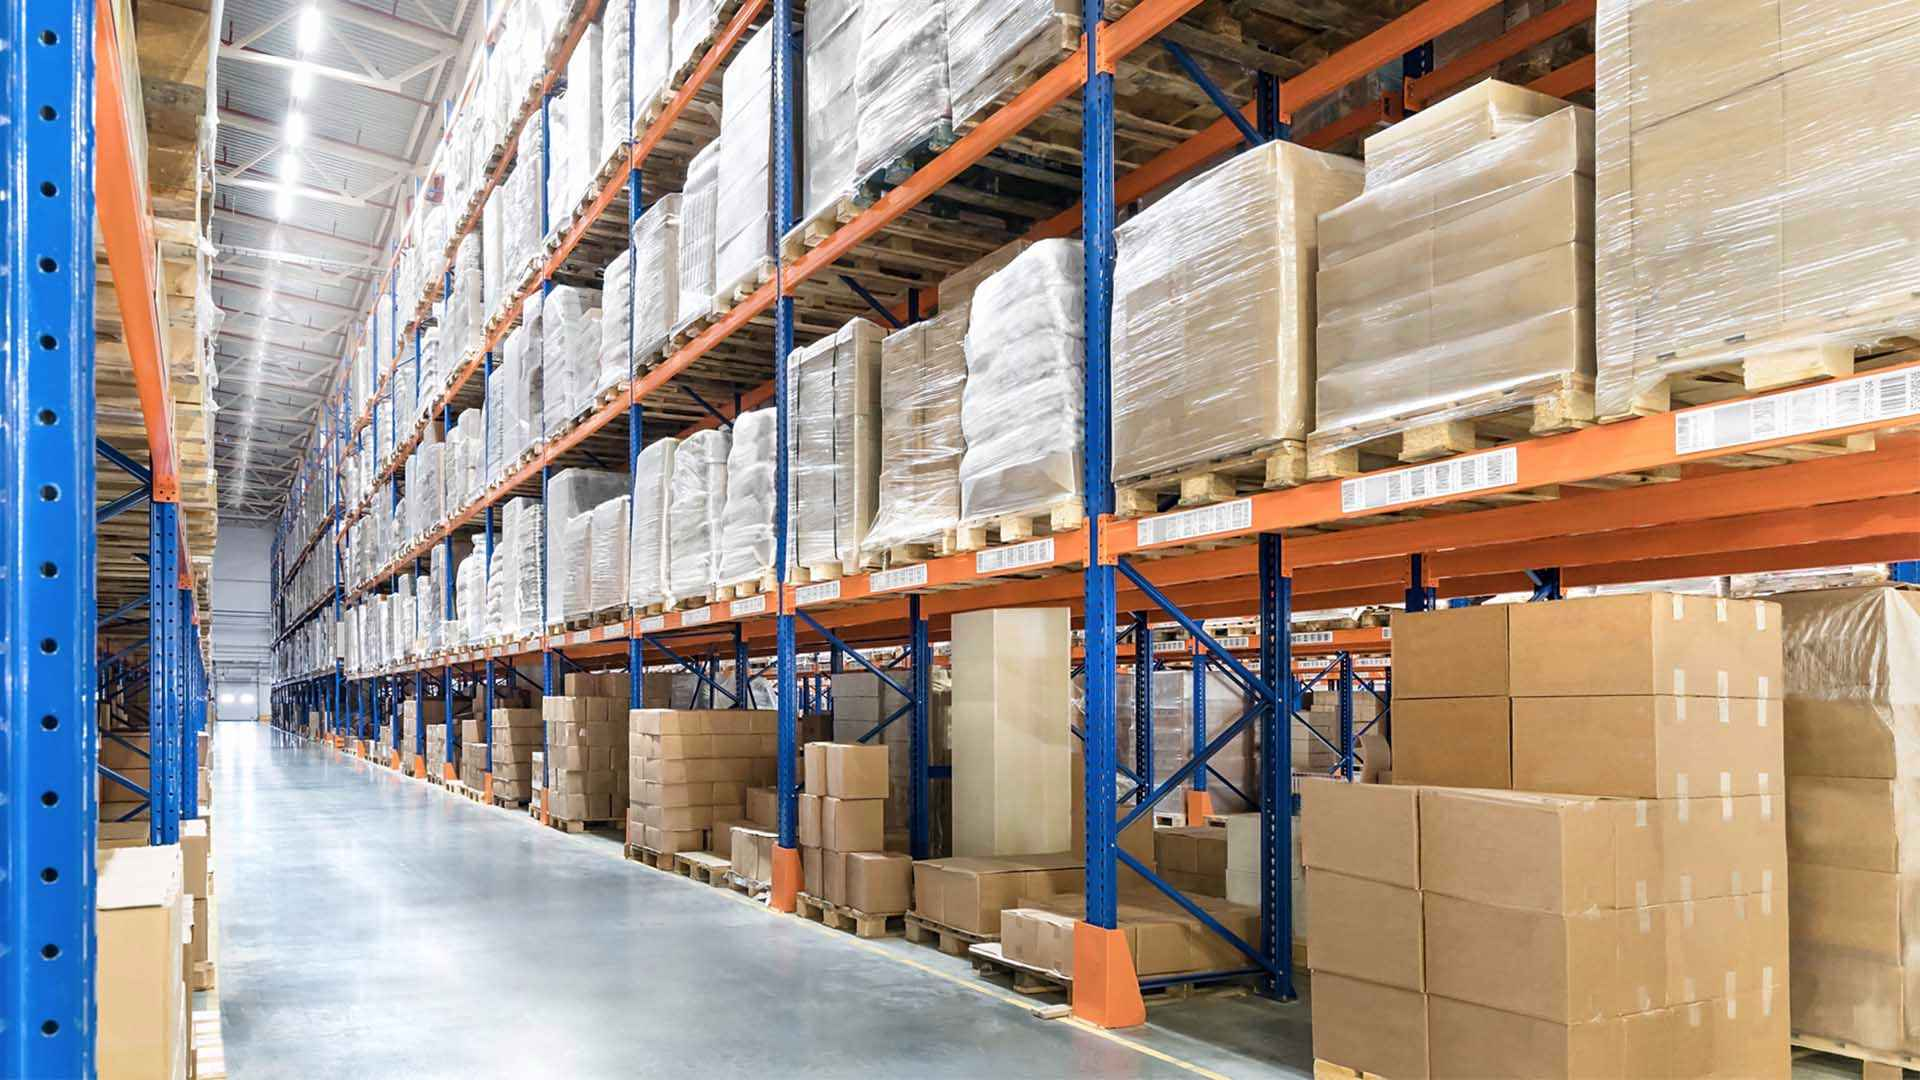 Logistics in Mexico: the benefits of bonded warehousing